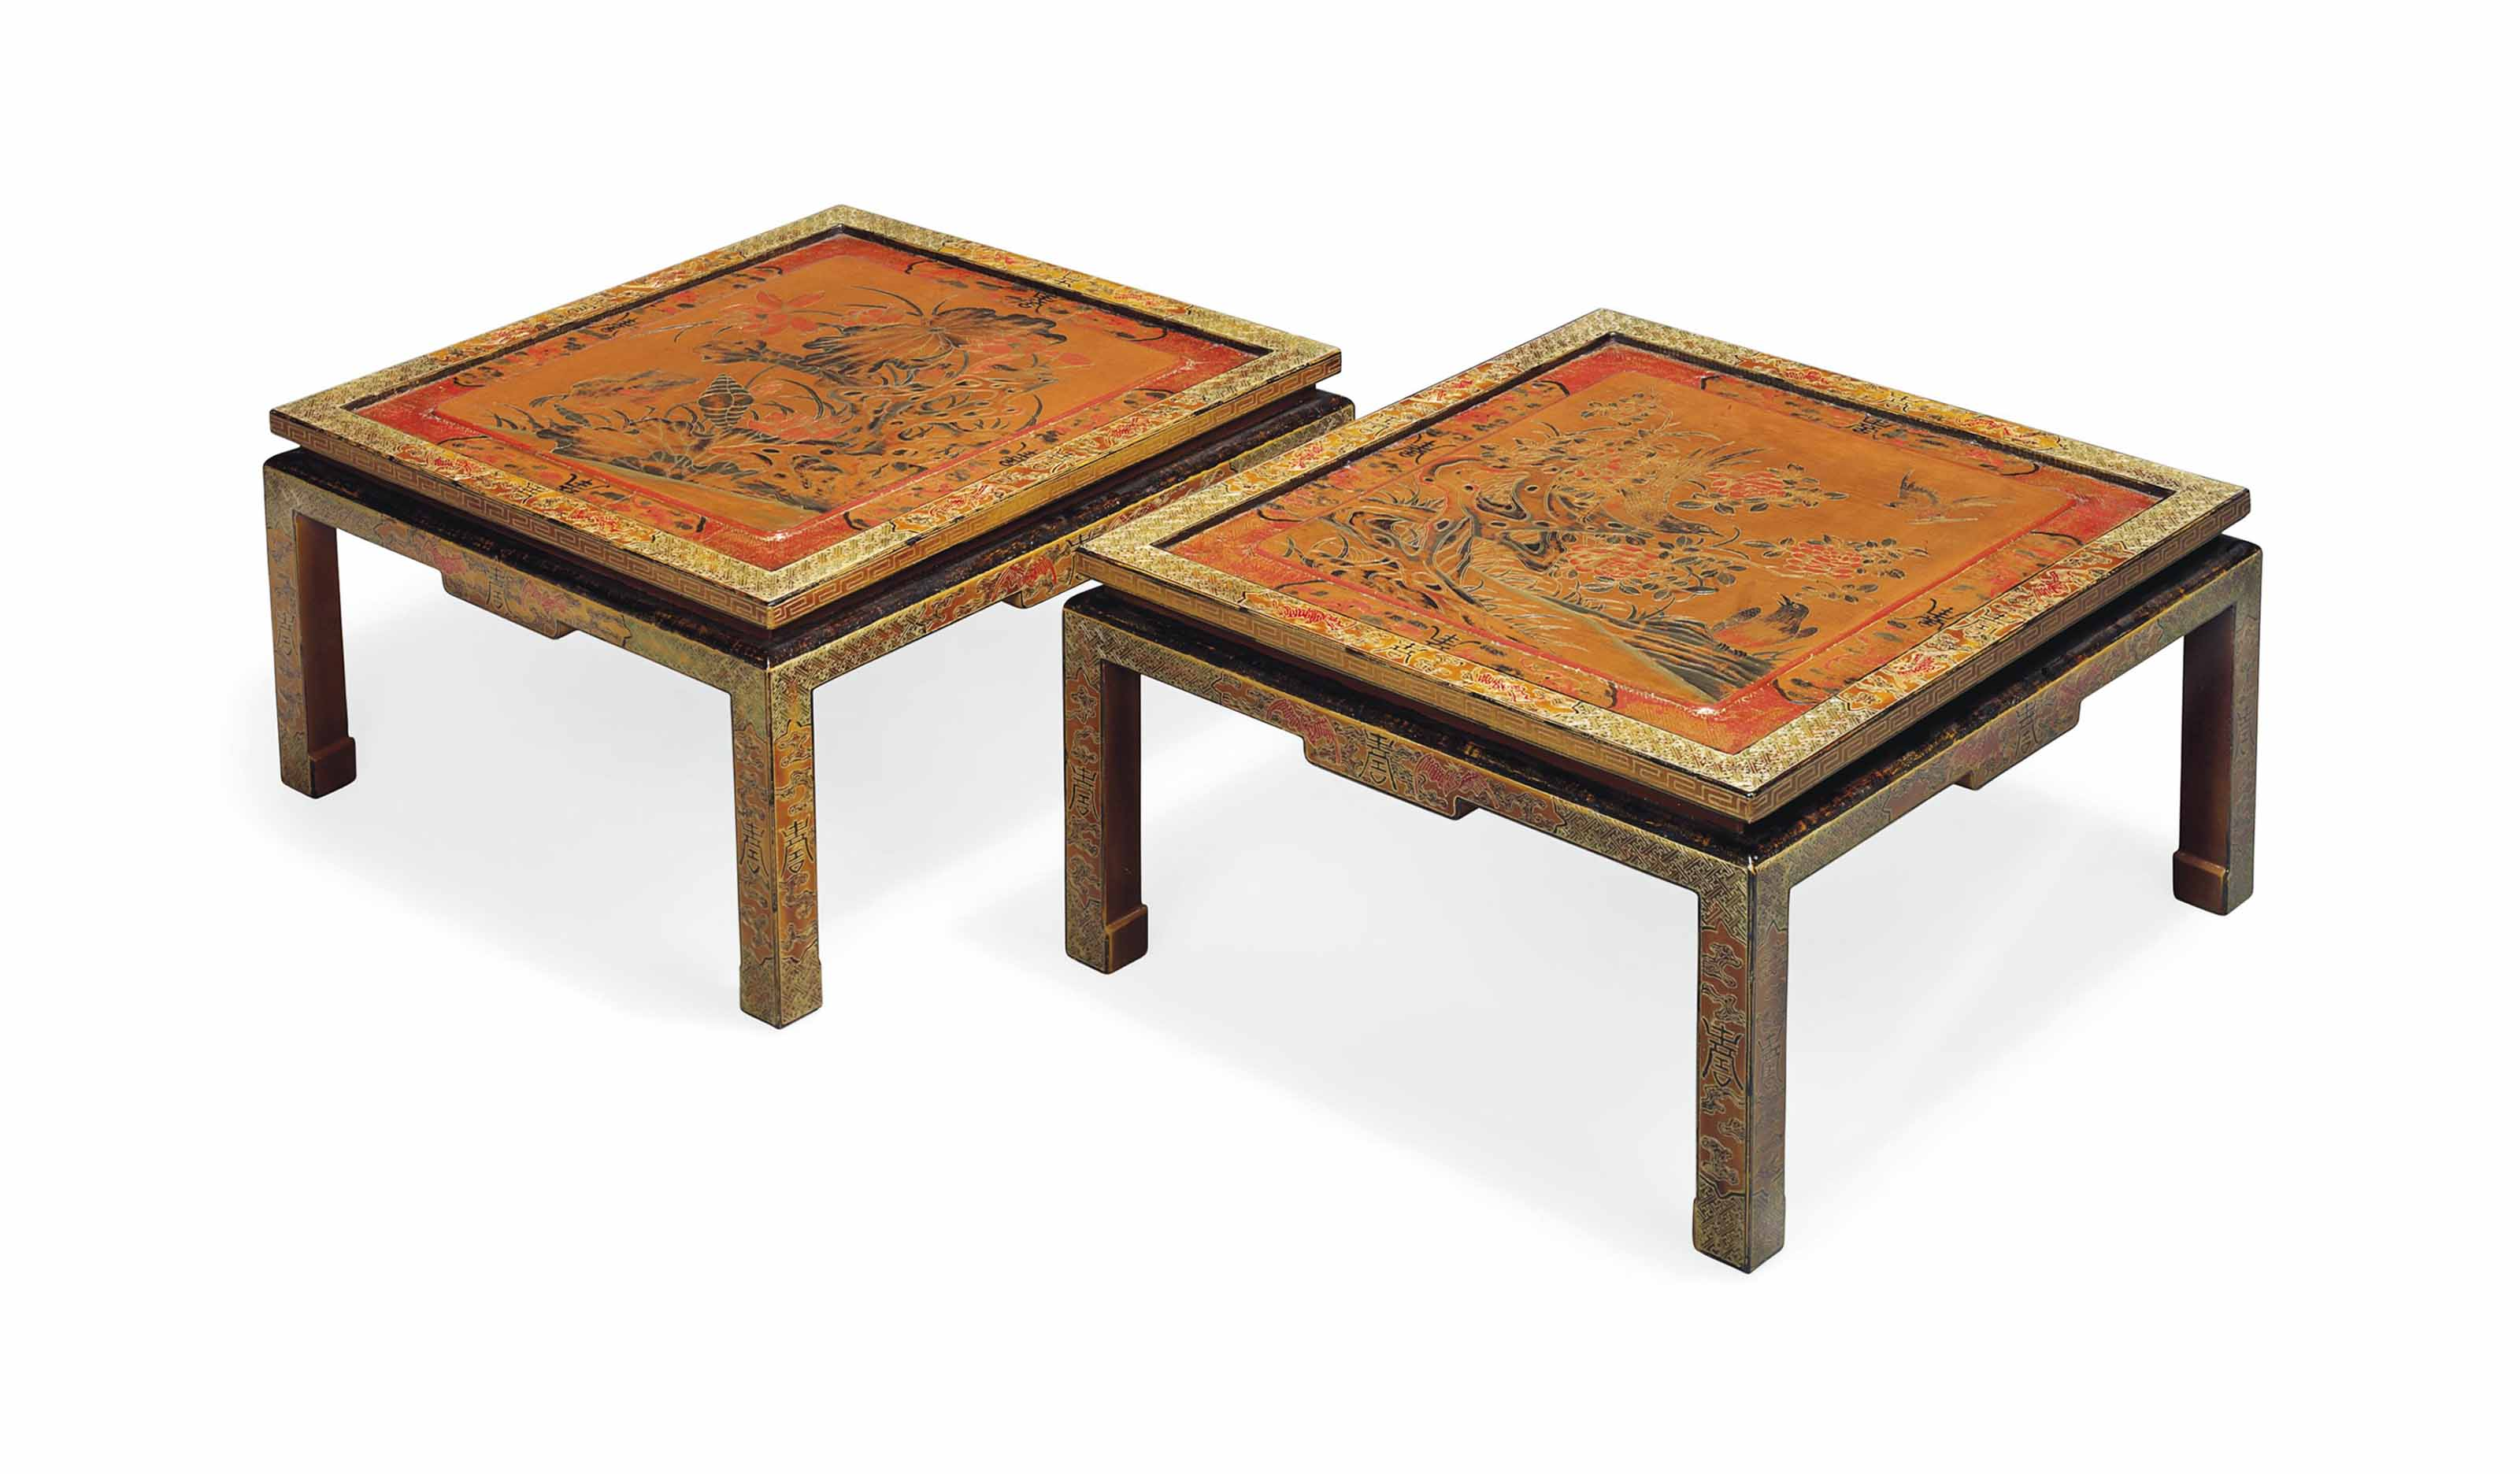 A PAIR OF RED, BLACK AND GILT LACQUER DECORATED LOW TABLES